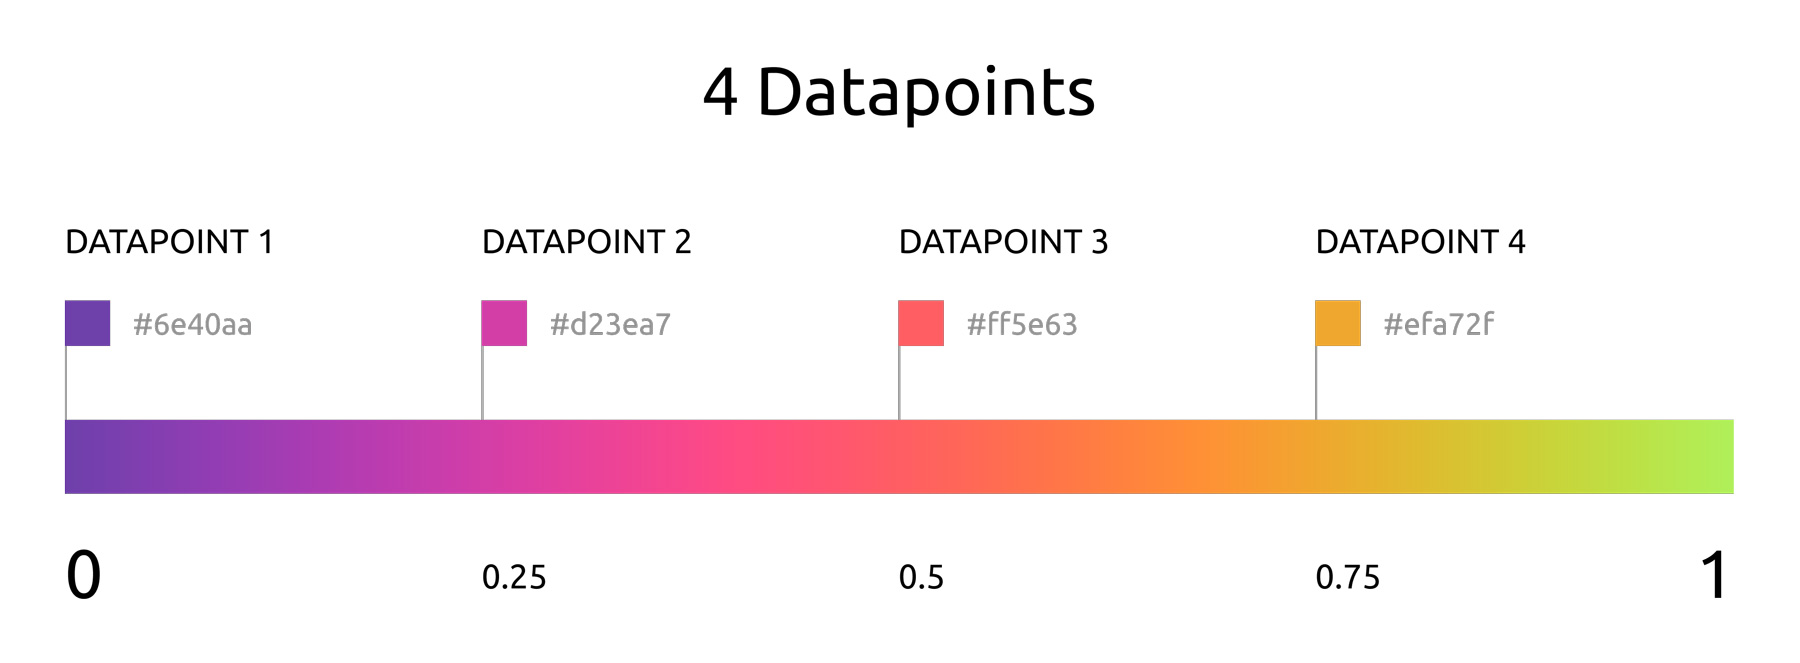 4 datapoints with color range [0, 1]